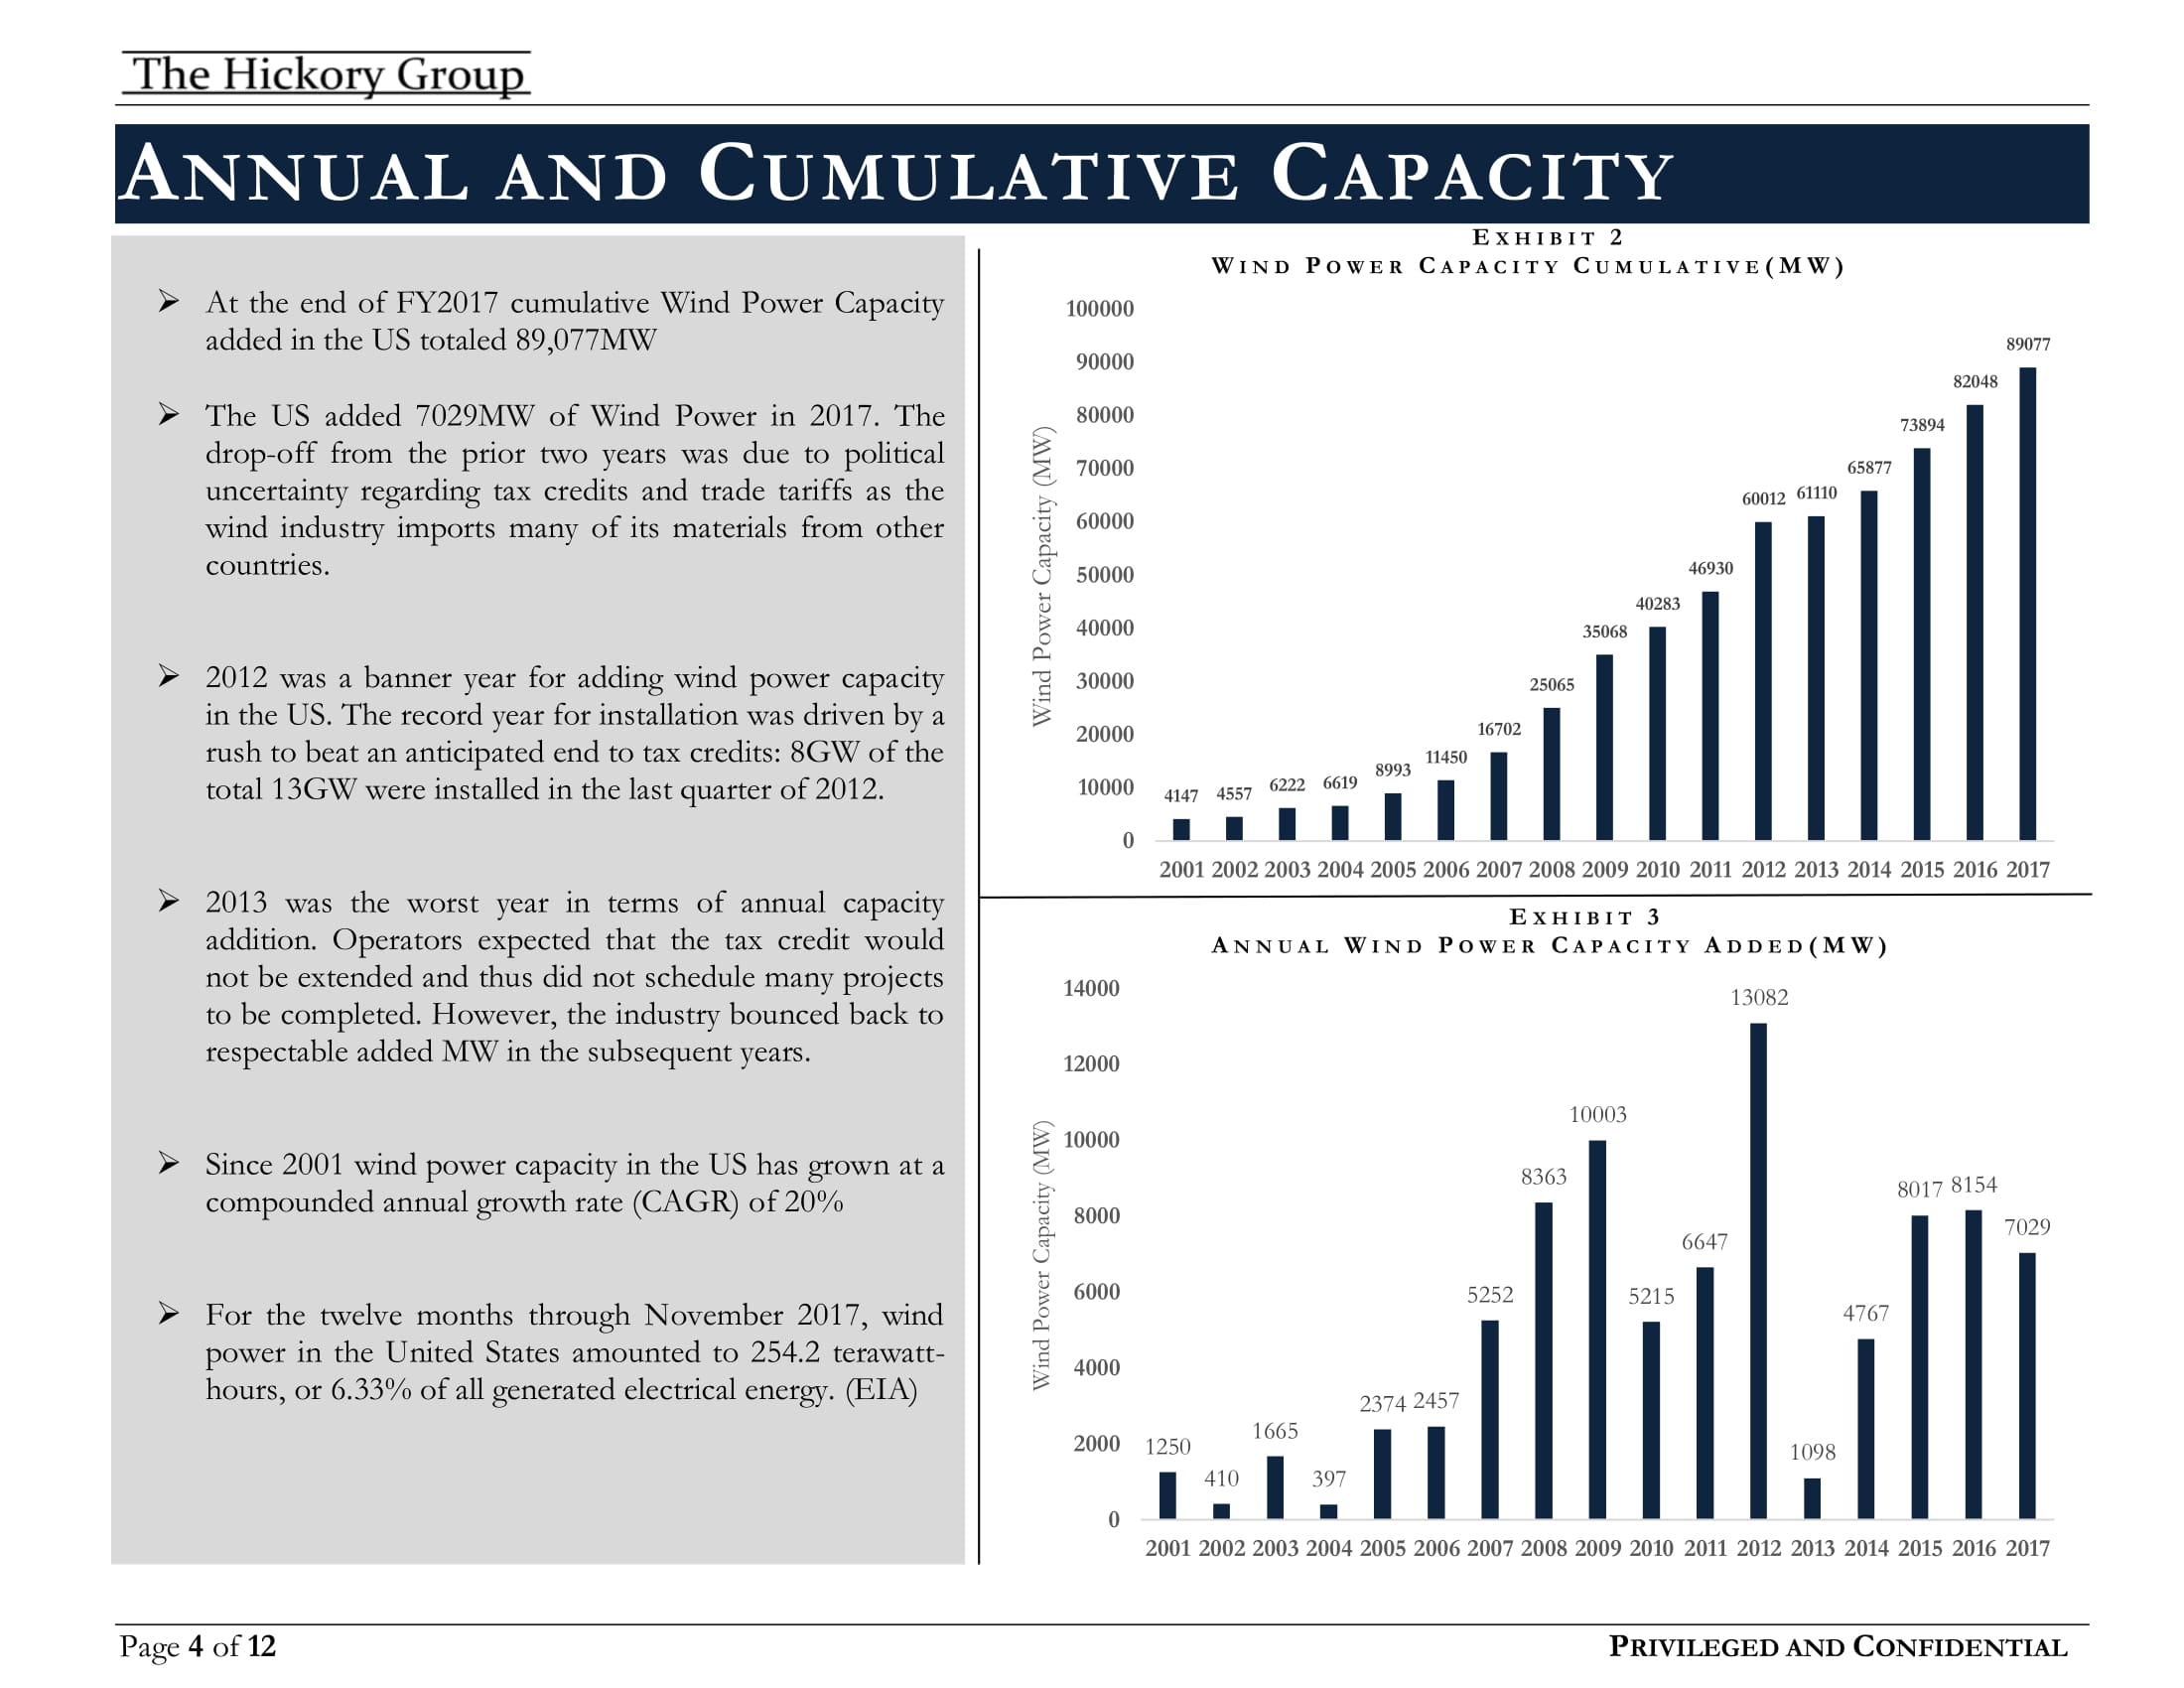 THG Wind Power Flash Report (July 2018) Privileged and Confidential copy[1]-04.jpg